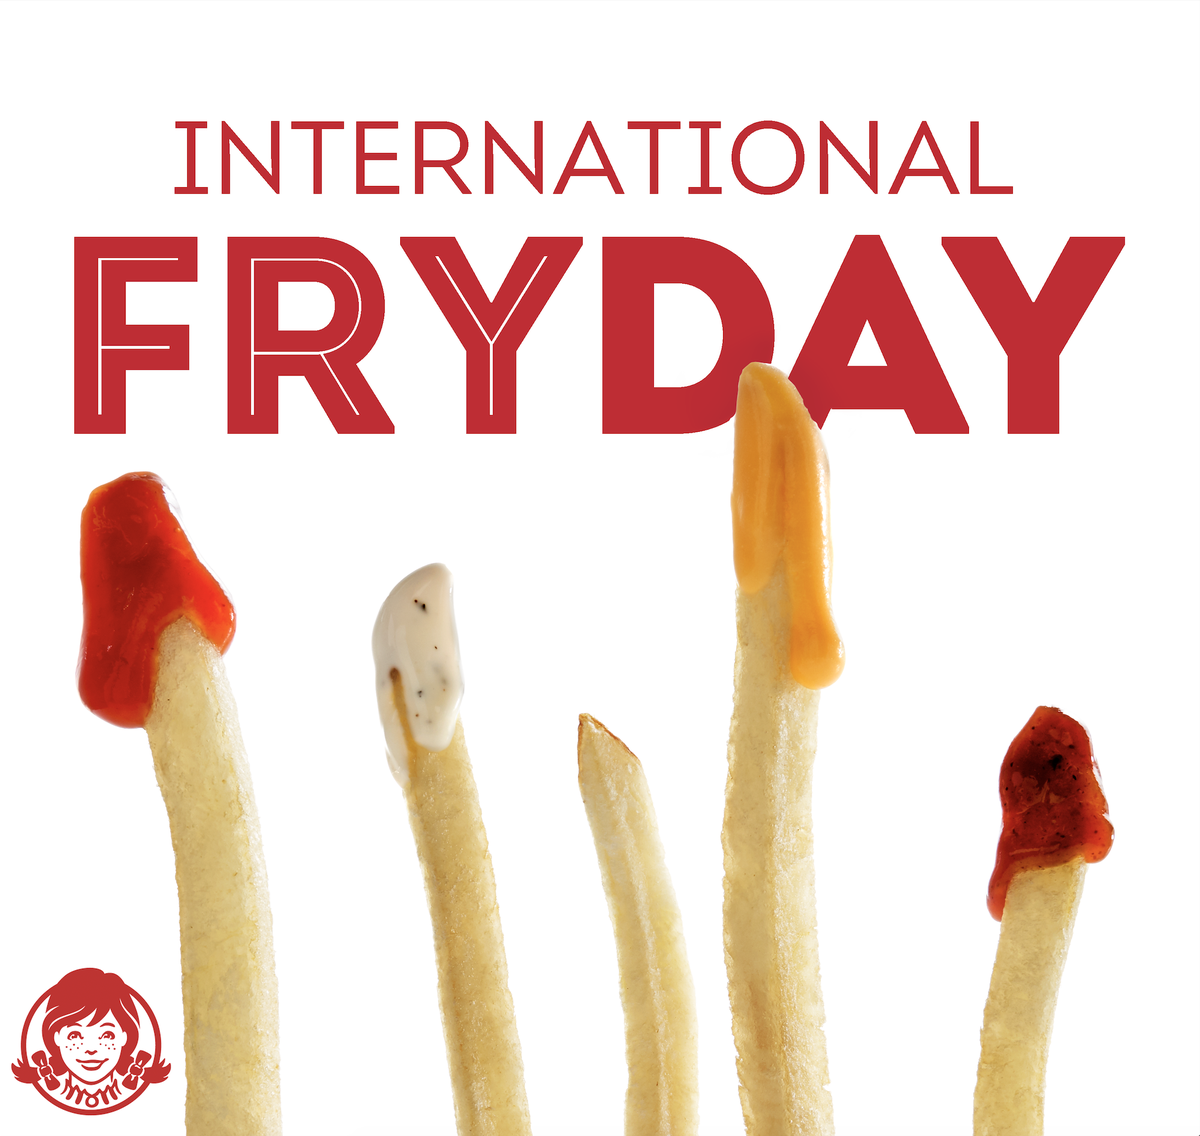 Celebrate International FryDay with our Natural Cut Sea Salt Fries and tell us how you dip yours?  Head to your nearest Wendy's branch for dine-in or take-out, or deliver now via our hotline at 8-533-3333 or our website at https://t.co/lAfPE697Zv https://t.co/pYKjnQYtVT